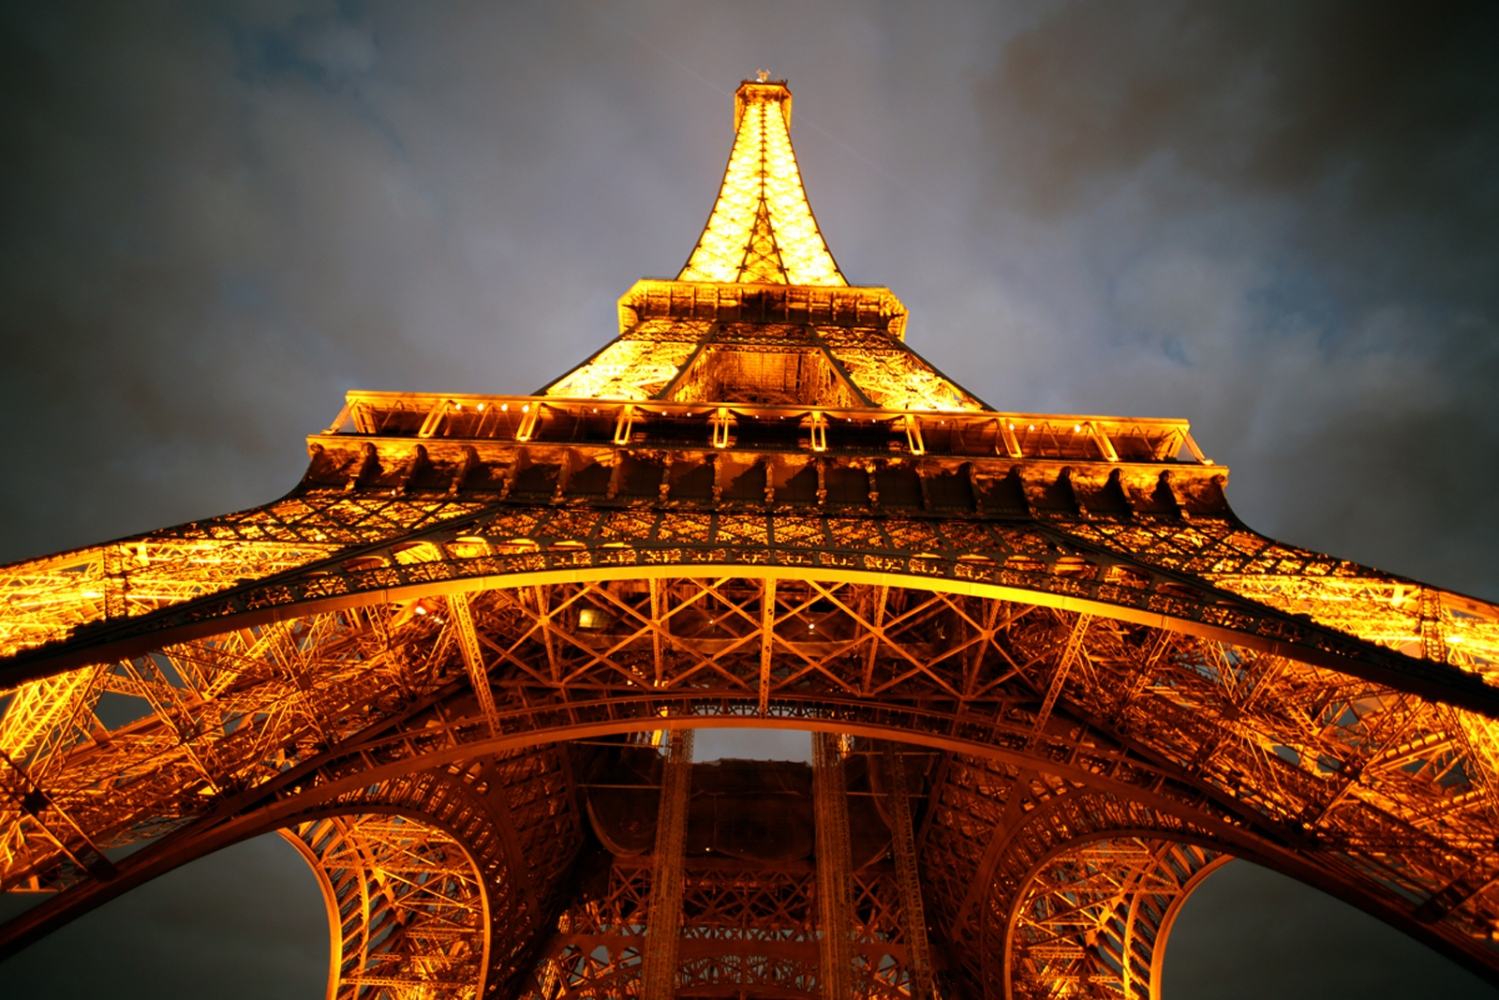 The Eiffel Tower Project by: Gustave Eiffel Paris - France